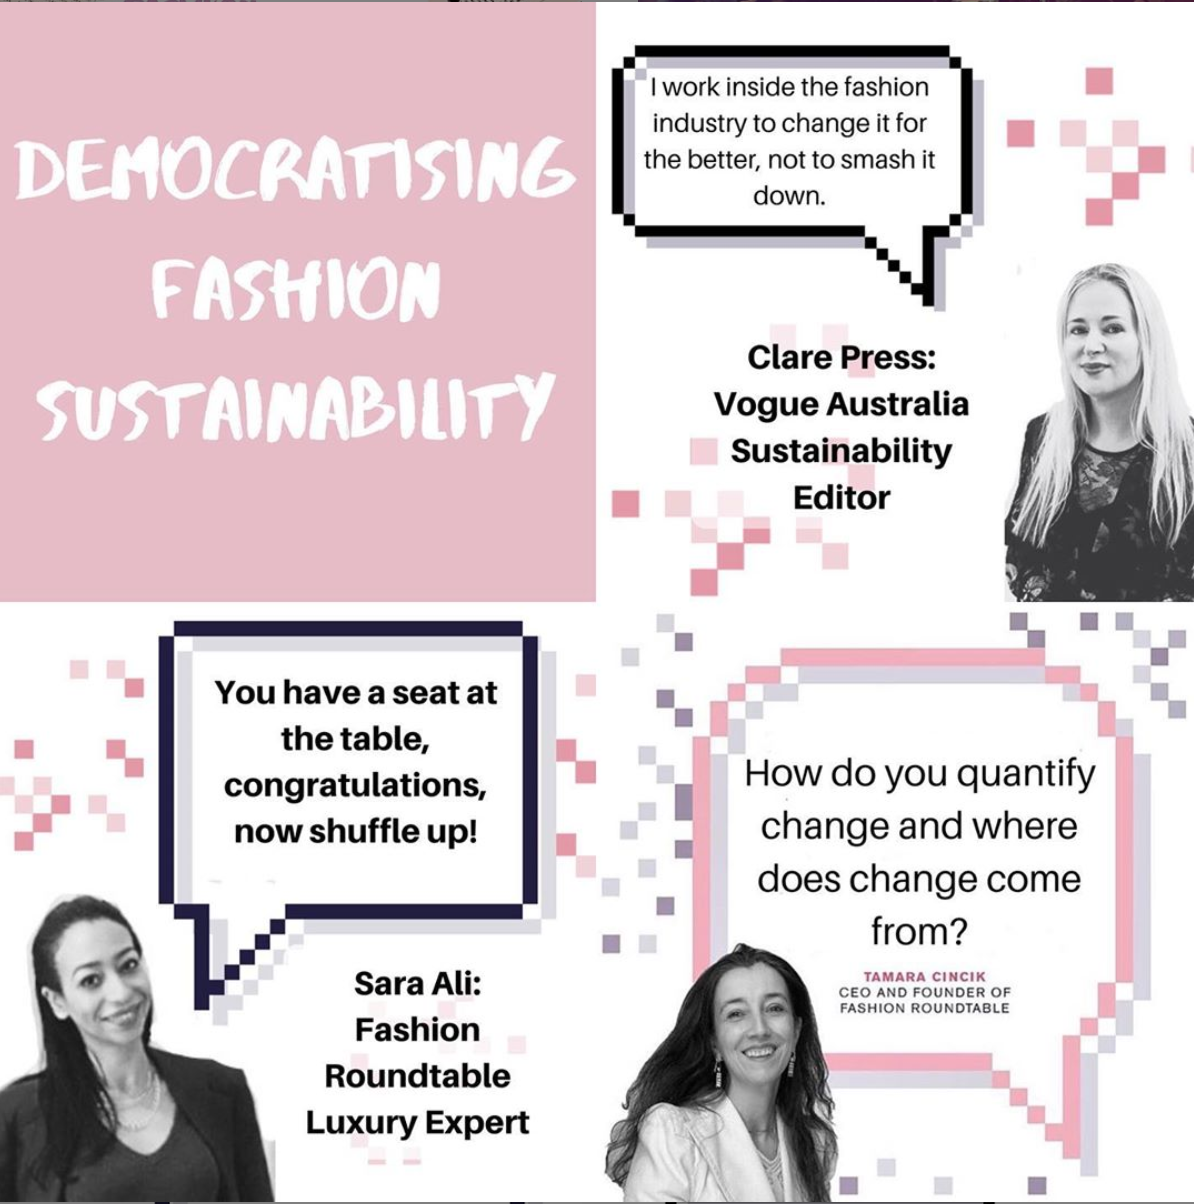 DEMOCRATISING FASHION SUSTAINABILITY - Q&A and Workshop with Clare Press, Sustainability Editor at Vogue Australia and workshops led by Clare, Sara Ali and Tamara Cincik on what policy and democratising fashion sustainability means for its long-term future as an inclusive sector.24/09/2019, The Curtain Hotel, Shoreditch